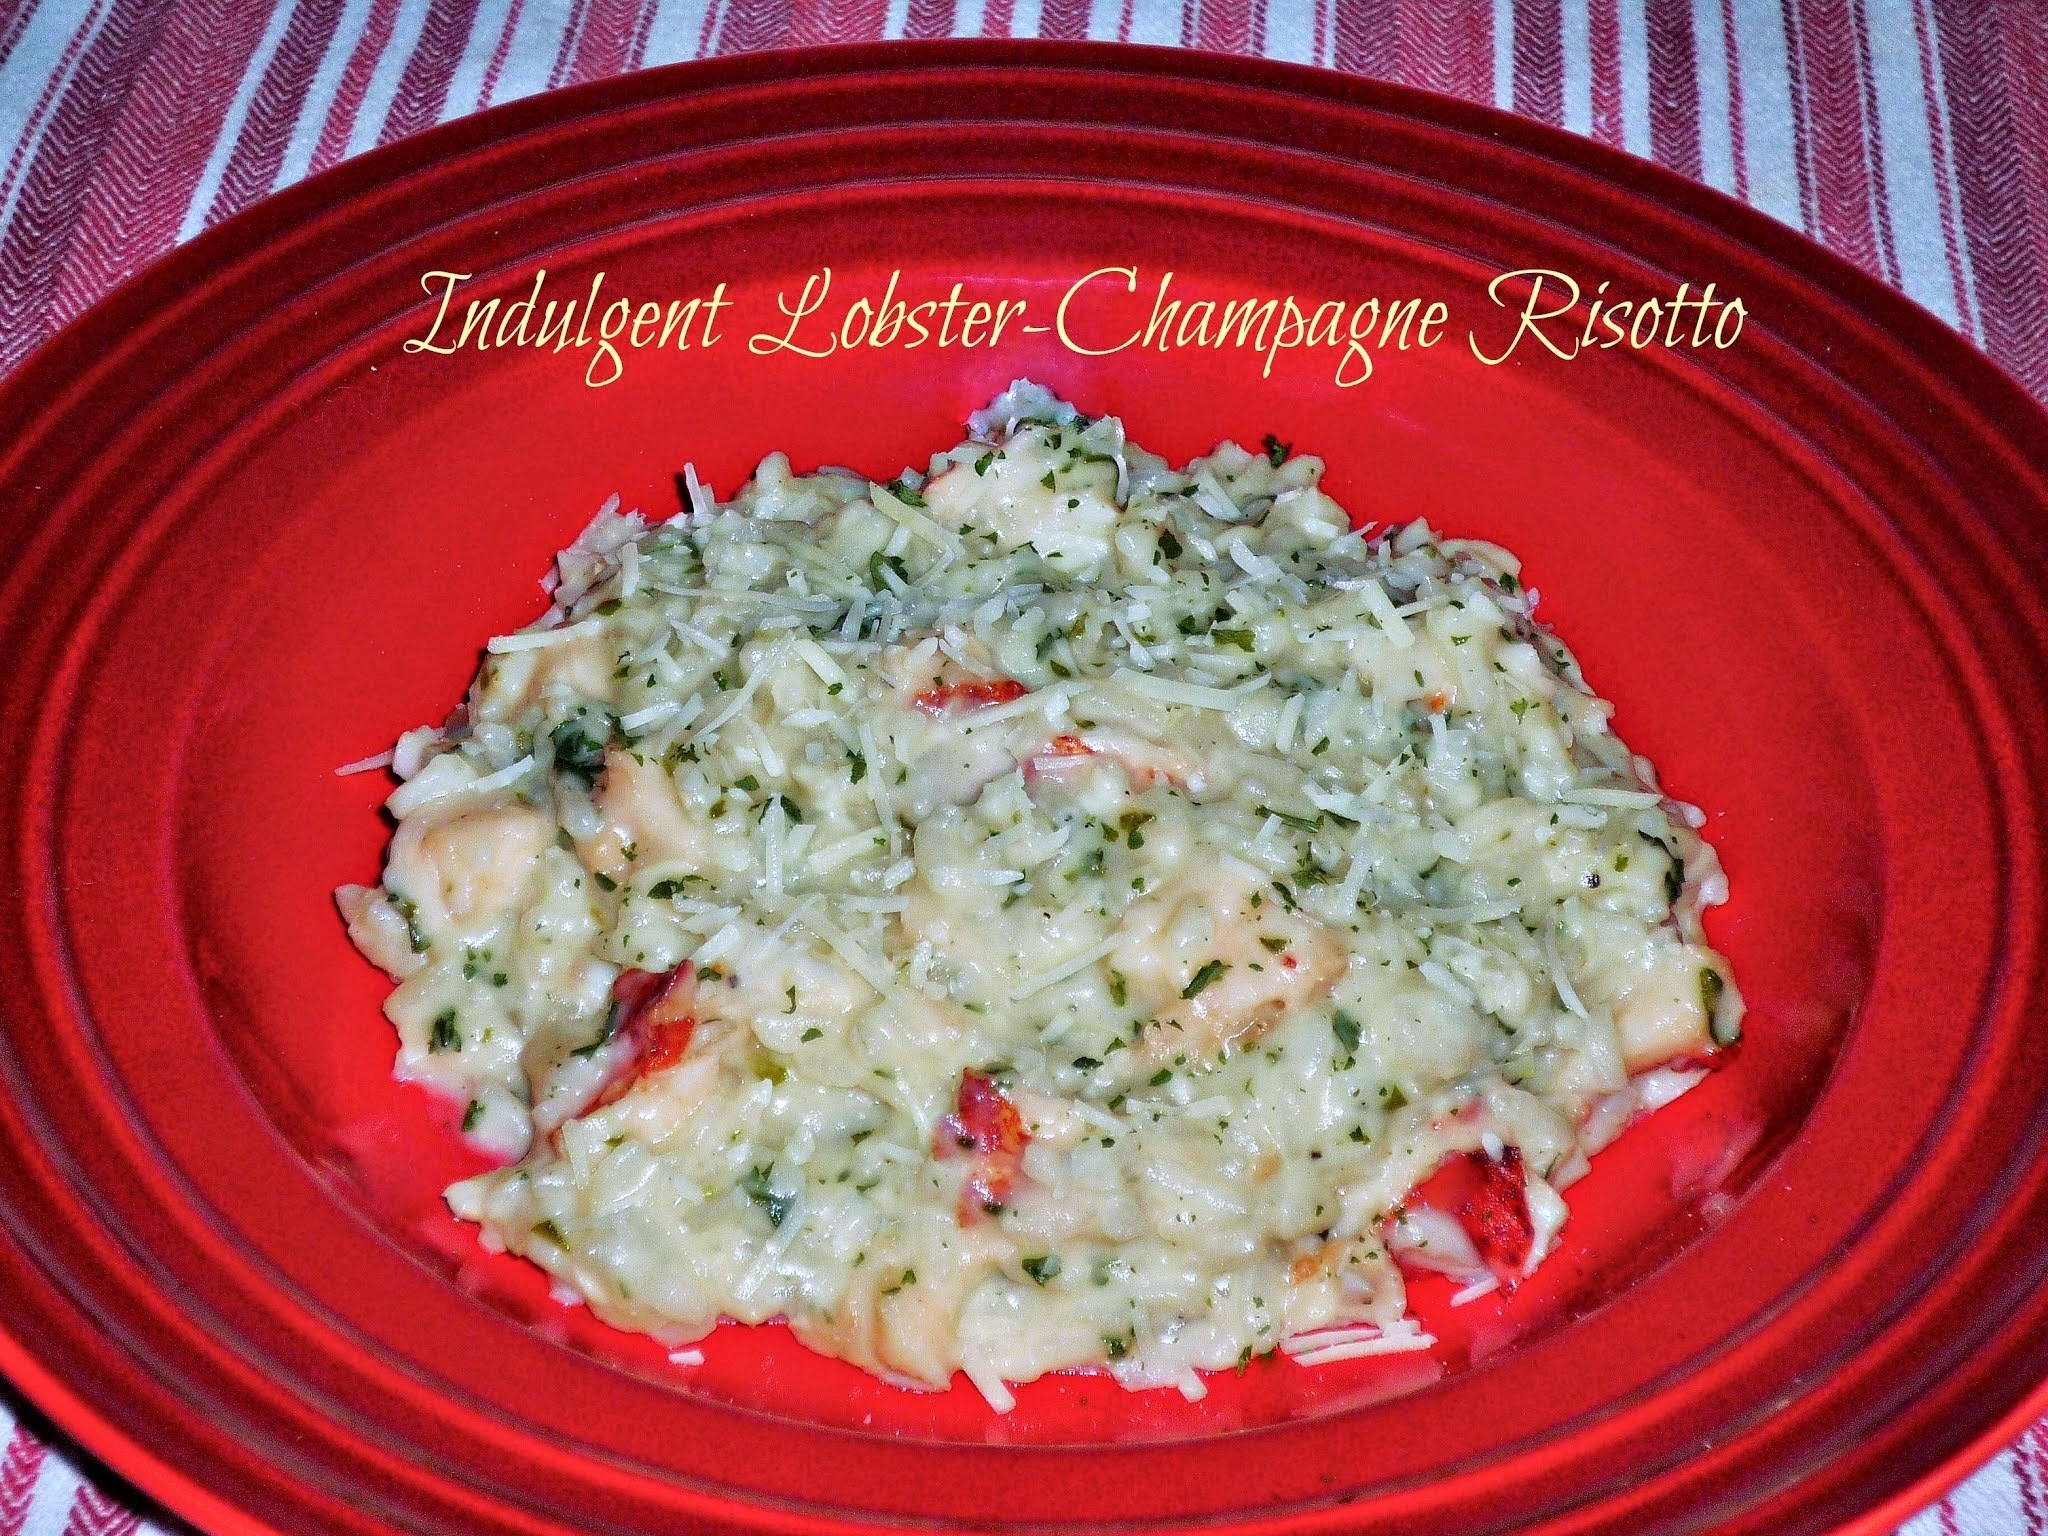 Red Carpet #SundaySupper...Featuring Indulgent Lobster-Champagne Risotto